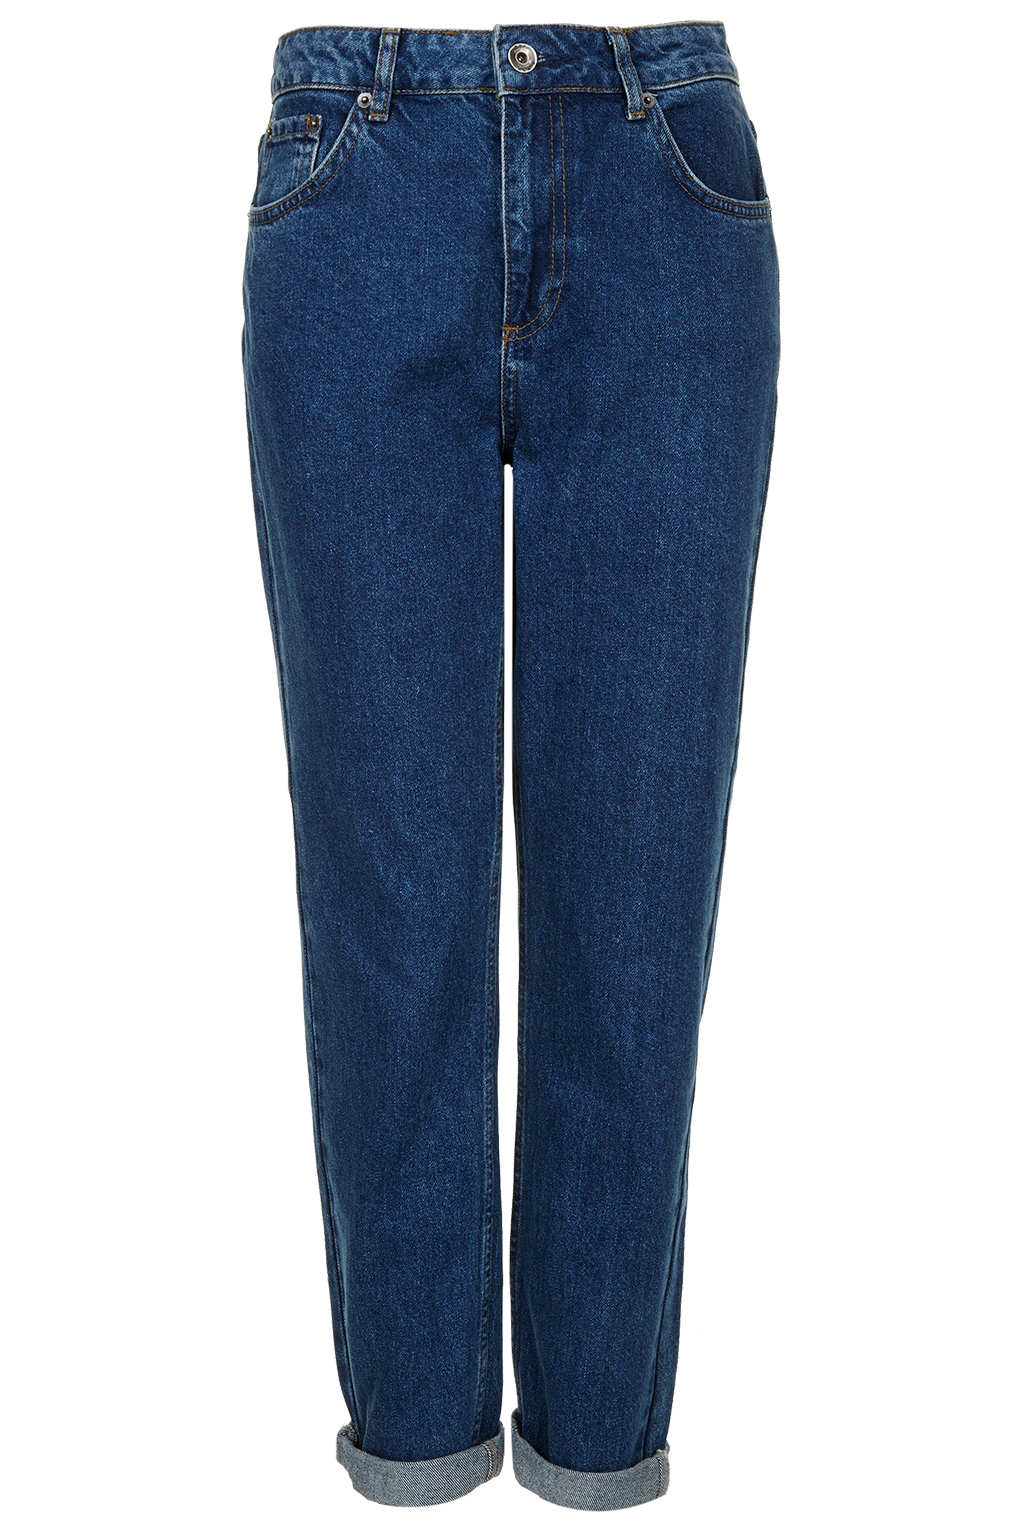 Topshop moto raw hem indigo jamie jeans in blue lyst for Womens denim shirts topshop